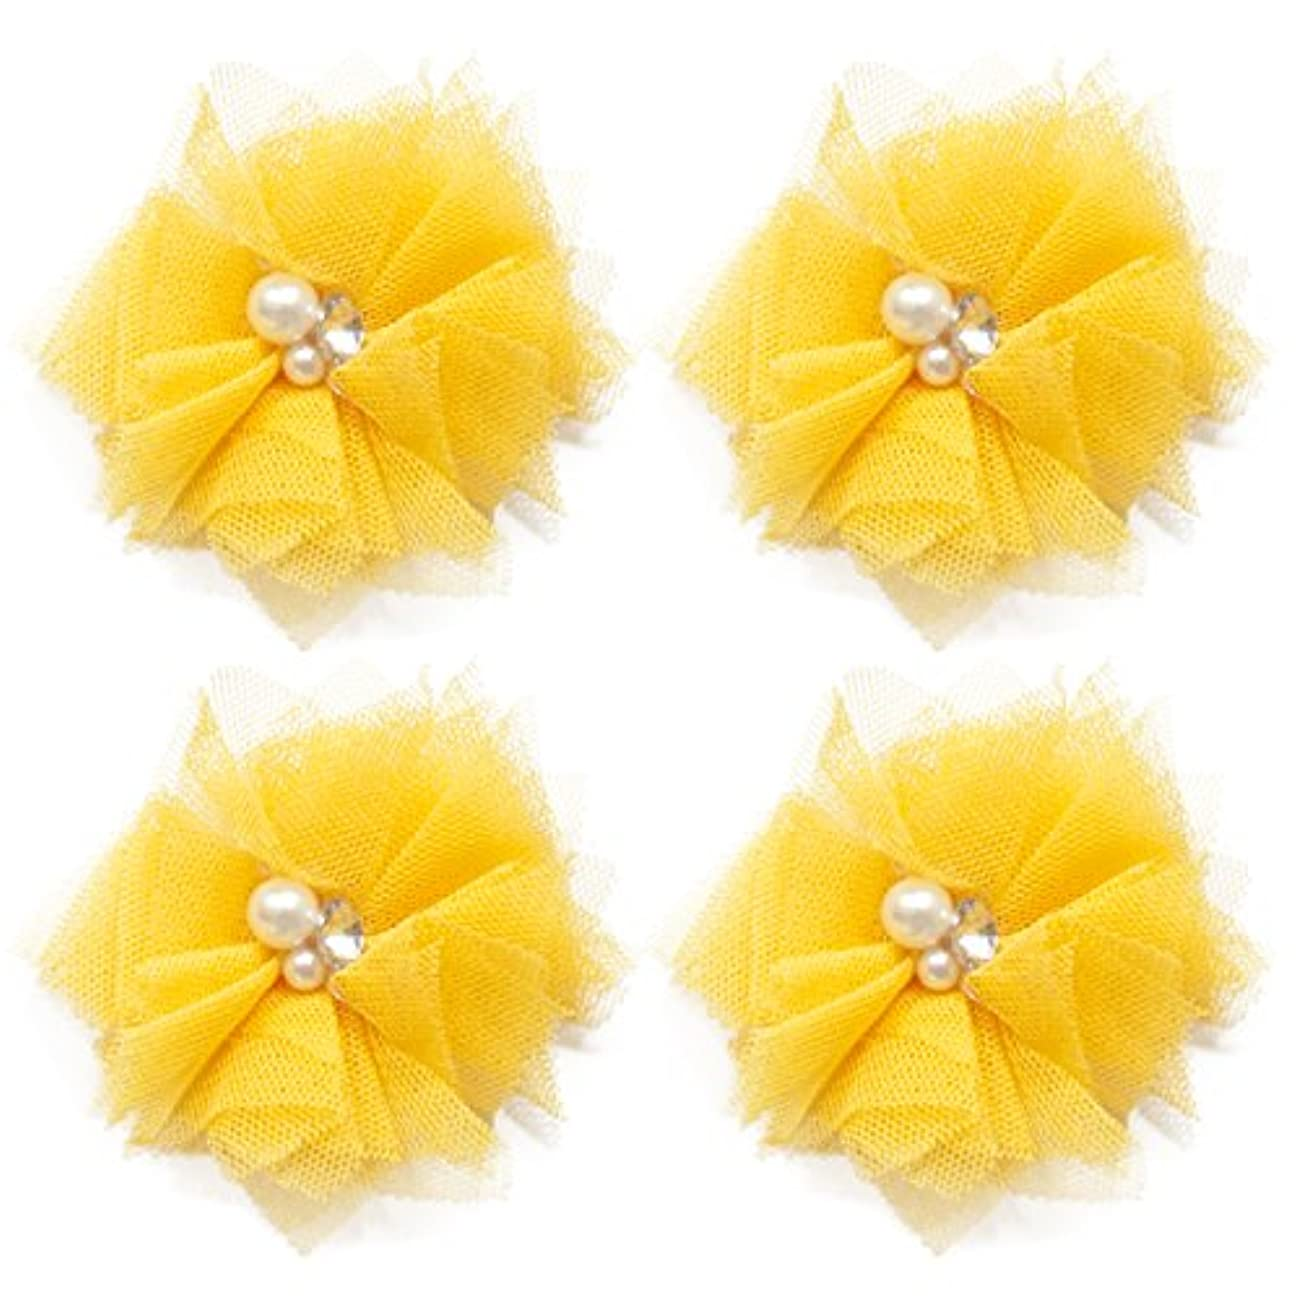 Maya Road TK3273 Tulle Mini Blooms - Sunny Yellow for Paper Crafts and Scrapbooking